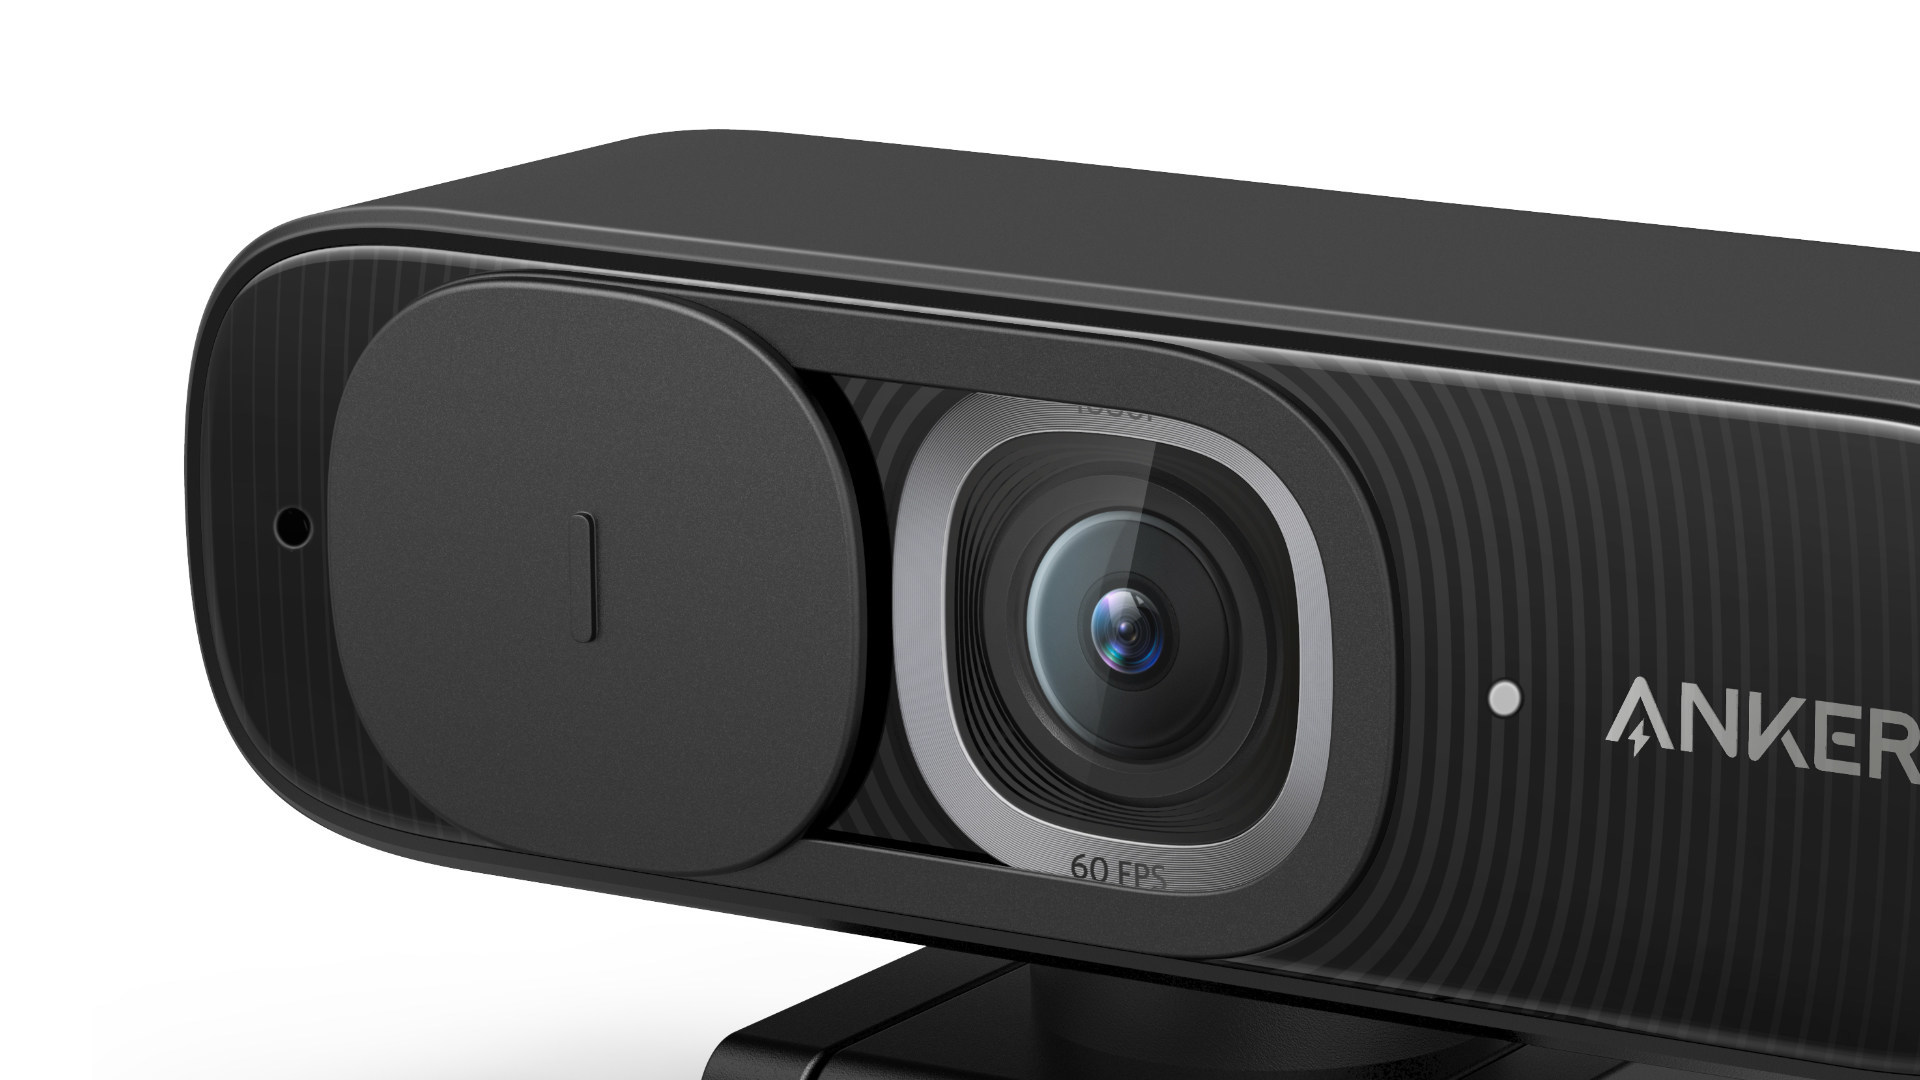 Anker Launches Smart AI-Enabled Webcam and Portable Noise-Isolating Conference Speaker